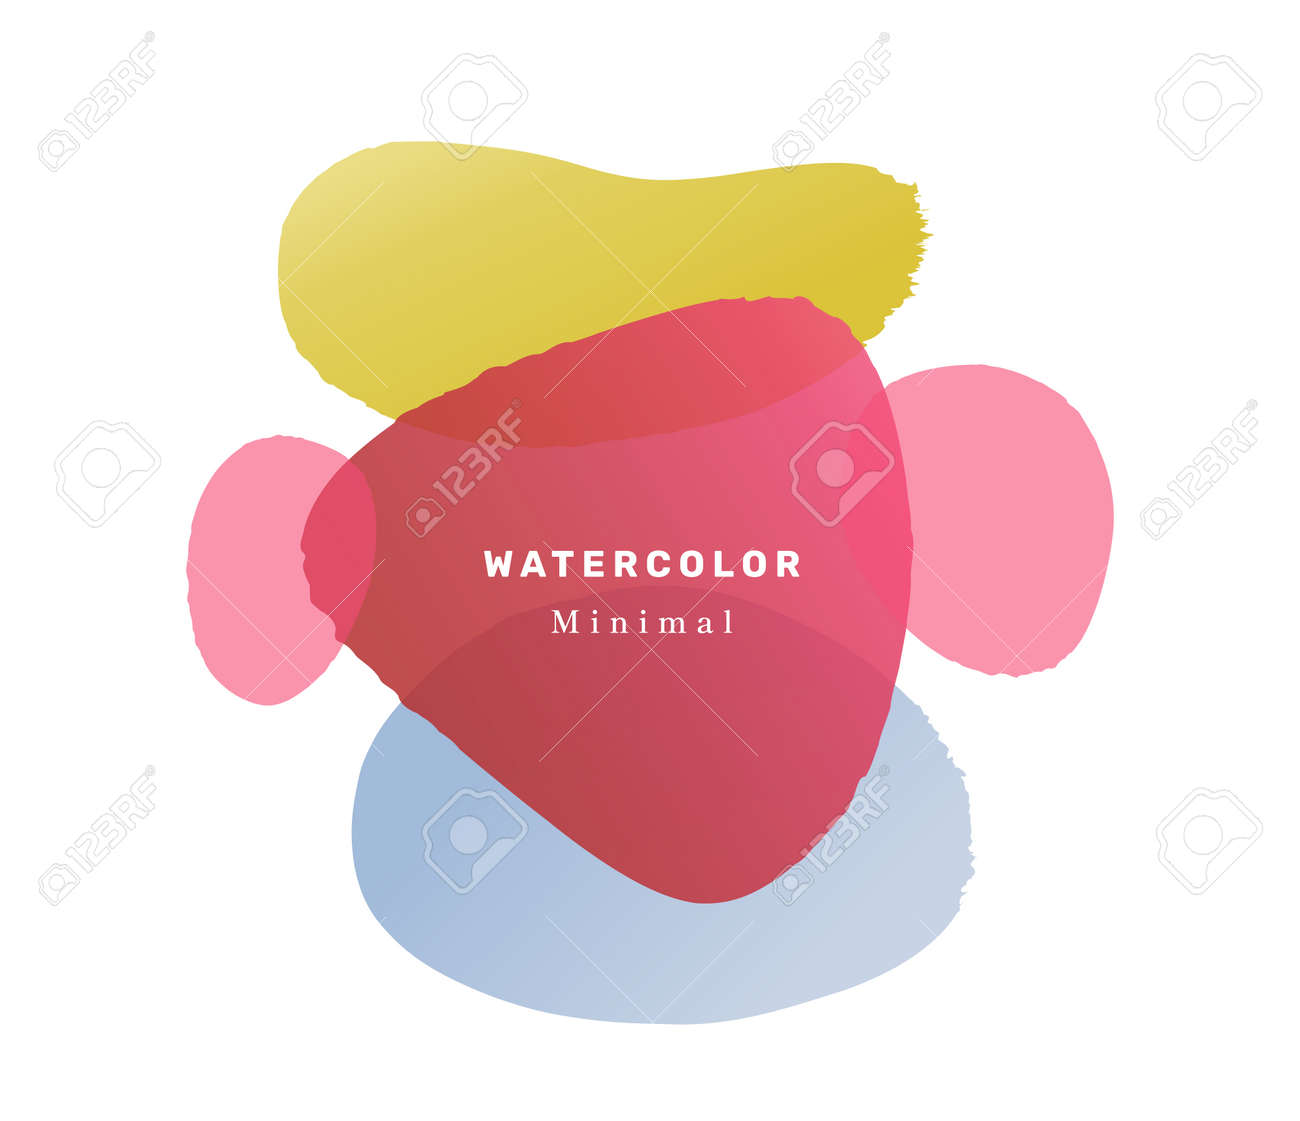 Modern banner with watercolor liquid blobs and shapes design. Isolated composition with inscription. Trendy contemporary invitation card or postcard or promo poster template. Flat cartoon vector - 171581842